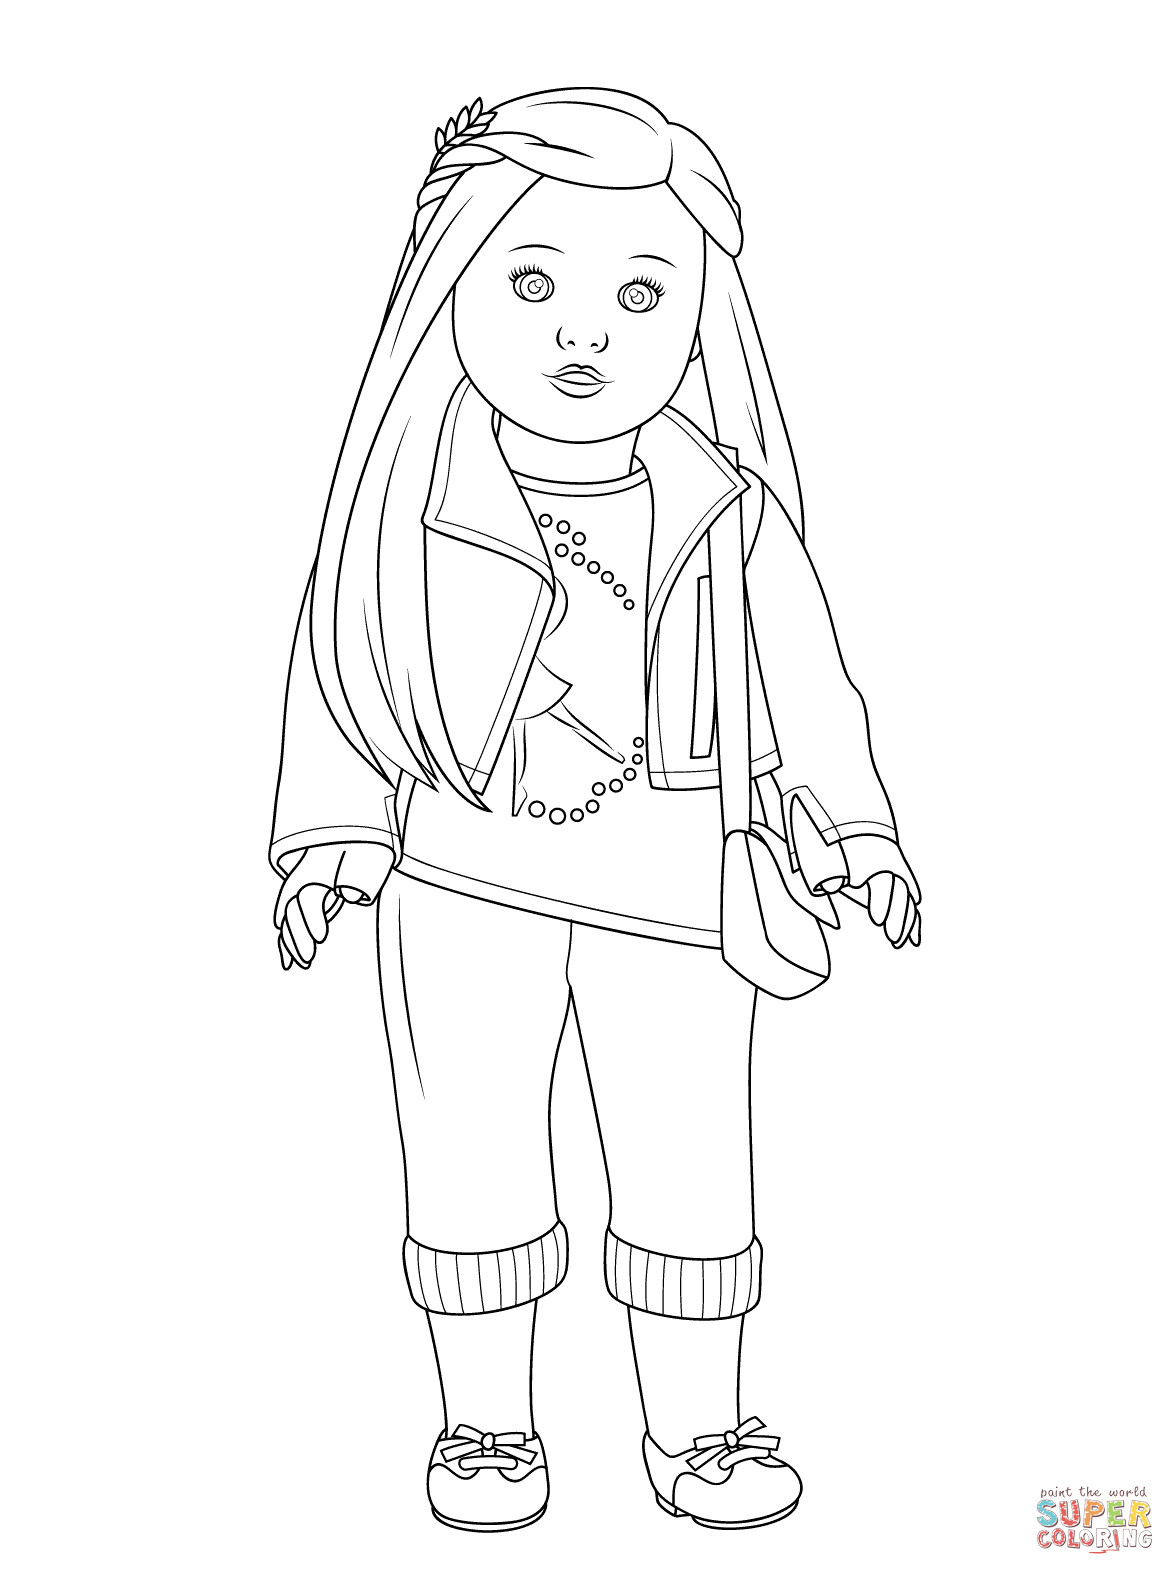 American Girl Doll Coloring Pages  American Girl Isabelle Doll coloring page